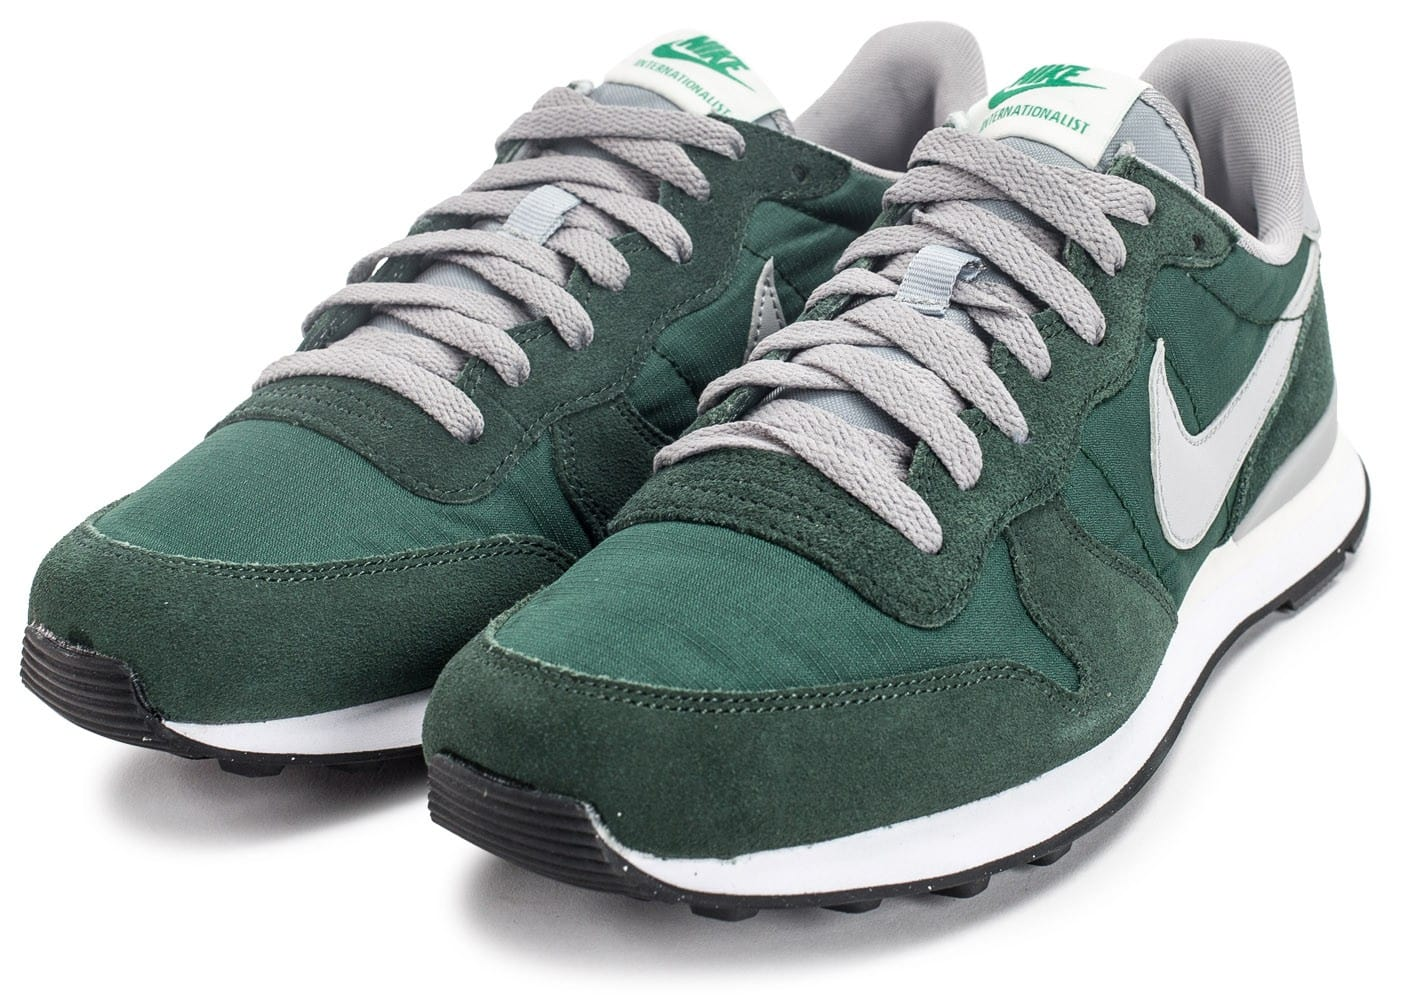 new product db761 80152 ... chaussures nike internationalist vert vue avant